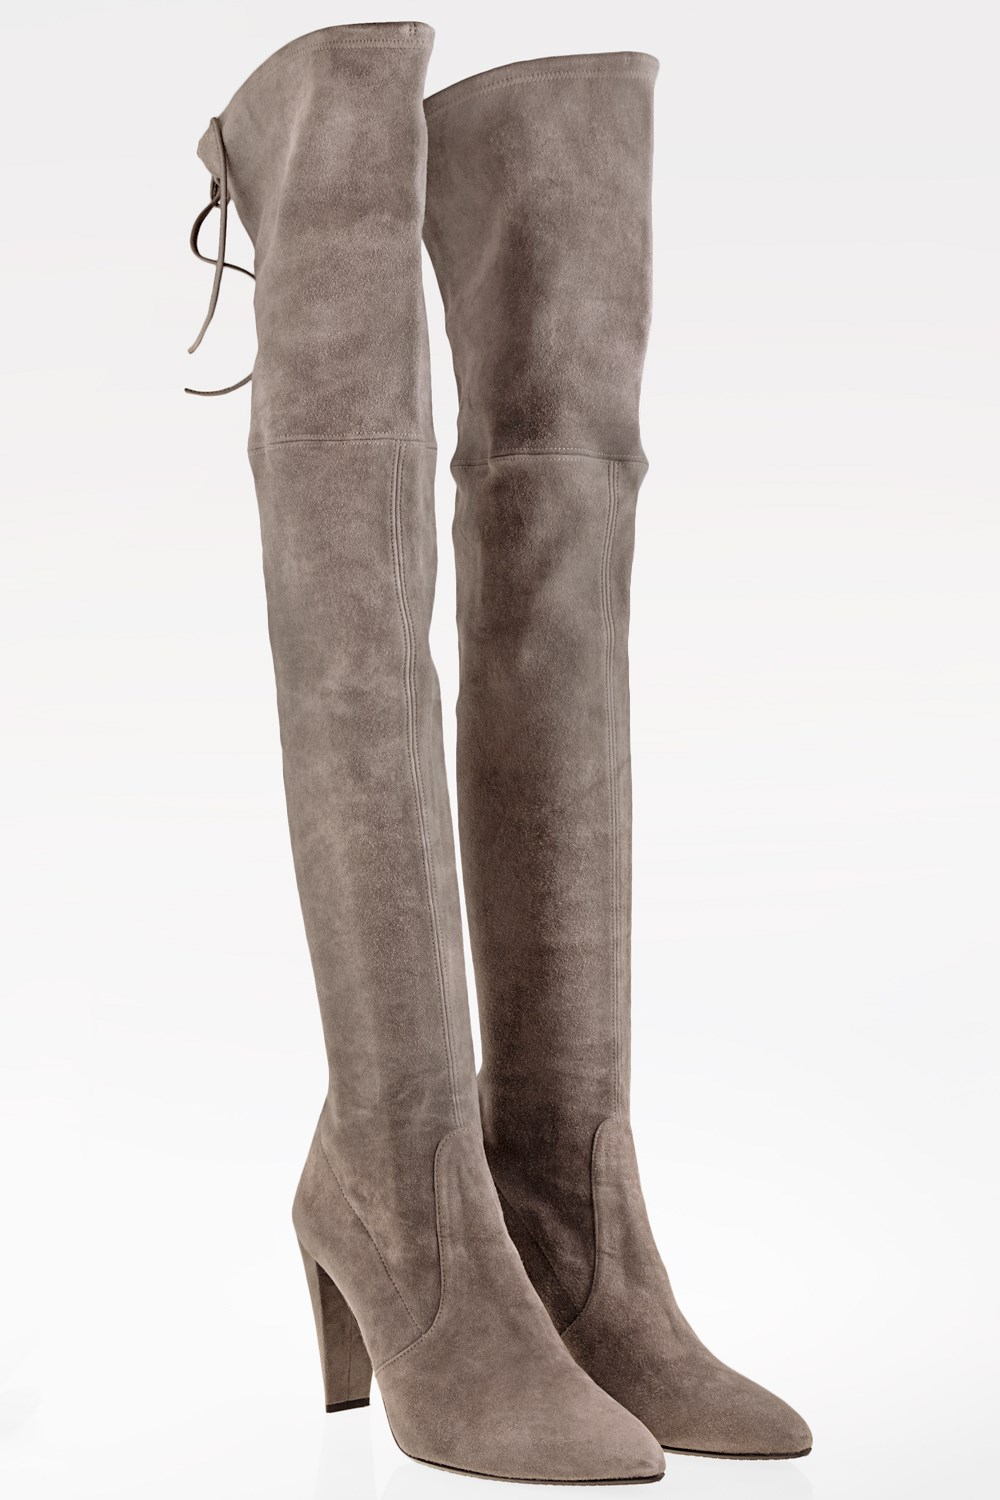 d83e11b1d42 Stuart Weitzman Topo Gray Stone Over-The-Knee Suede Boots   Size  40 ...